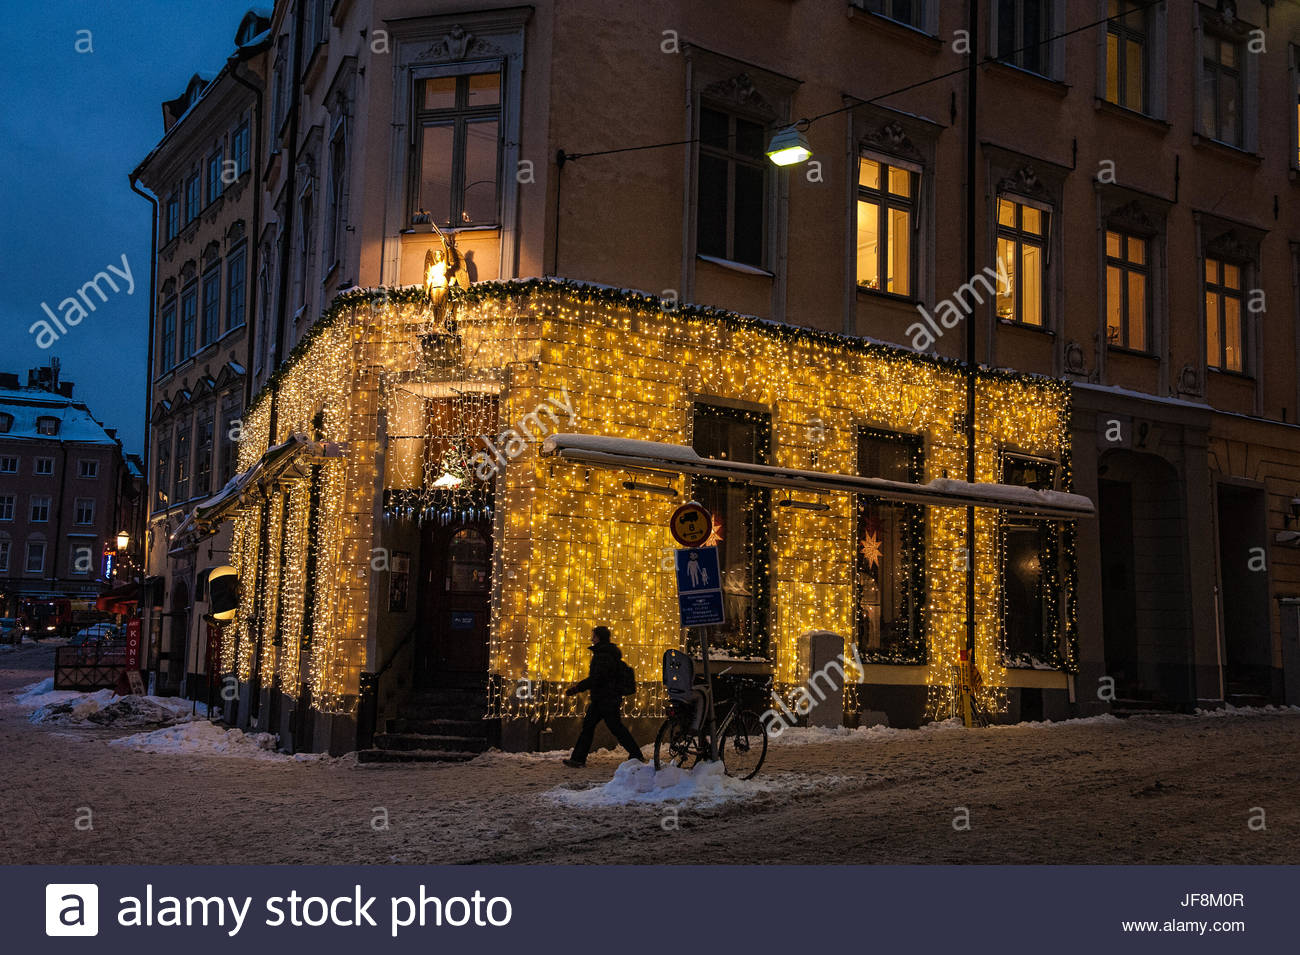 A building illuminated with Christmas lights. - Stock Image